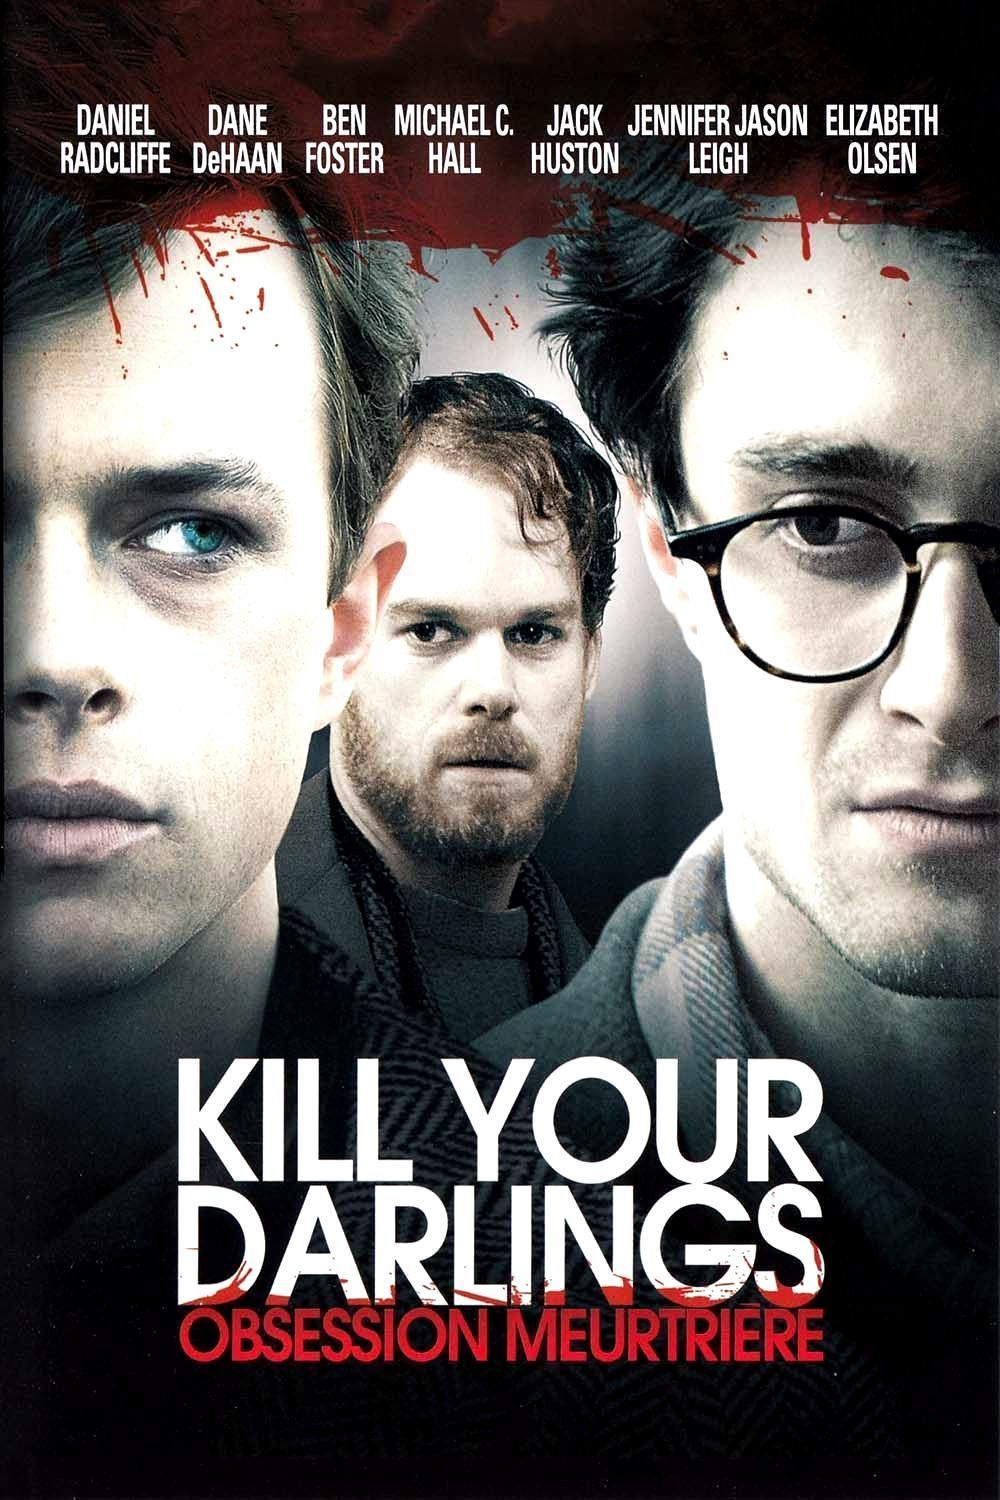 Kill your darlings – Obsession meurtrière